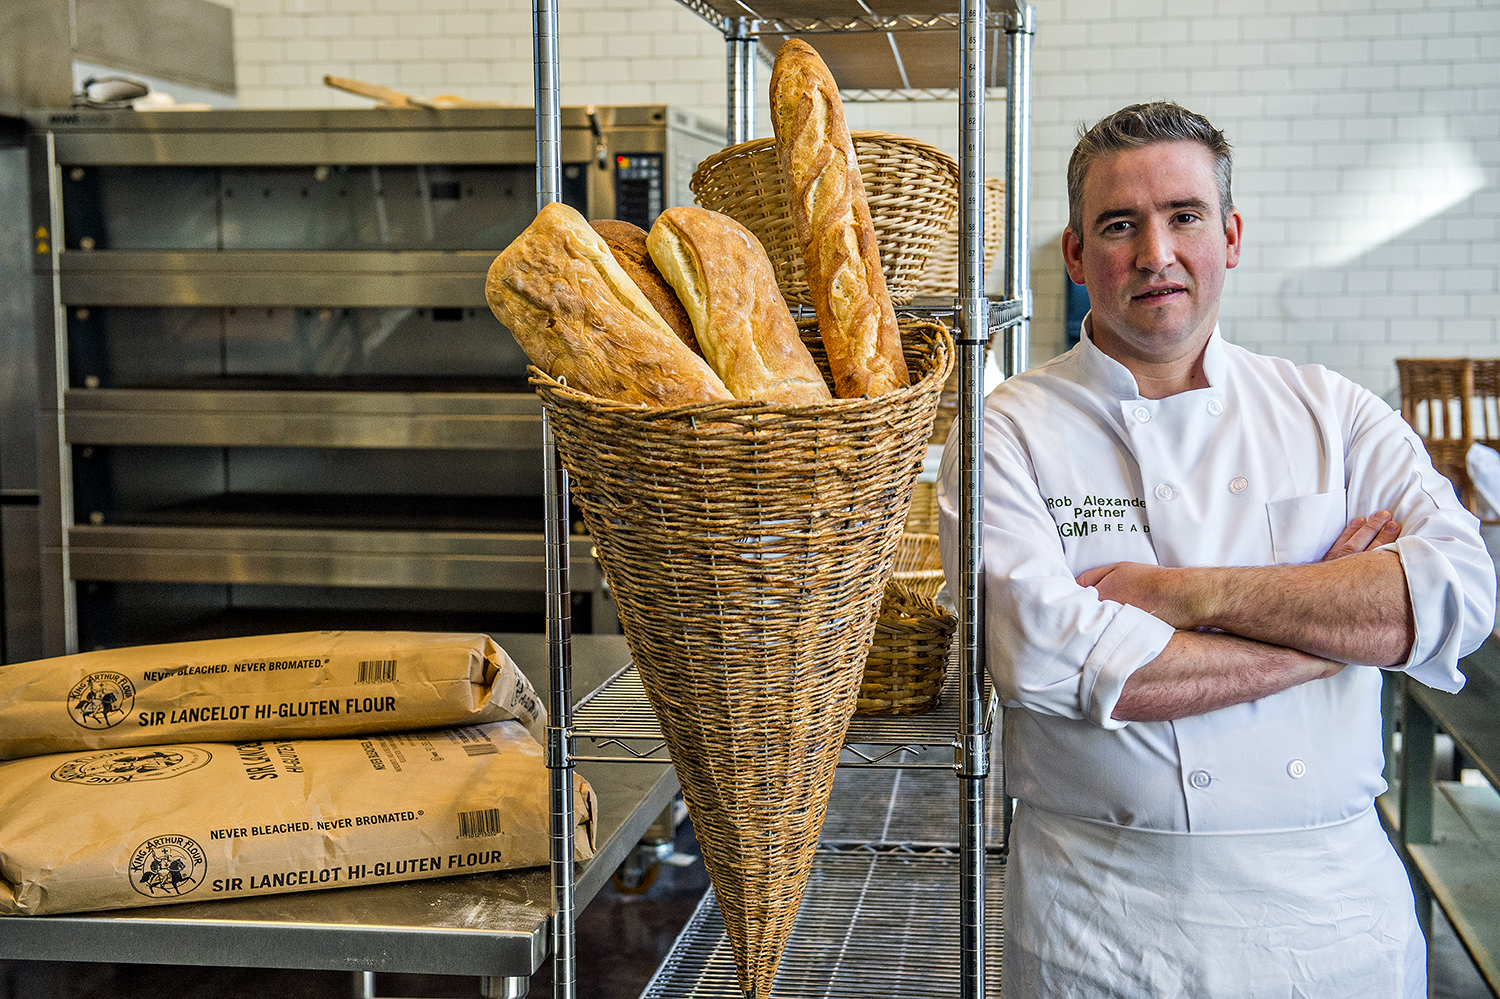 Bread Whisperer Rob Alexander on the Idea Behind TGM Bread, What to Expect